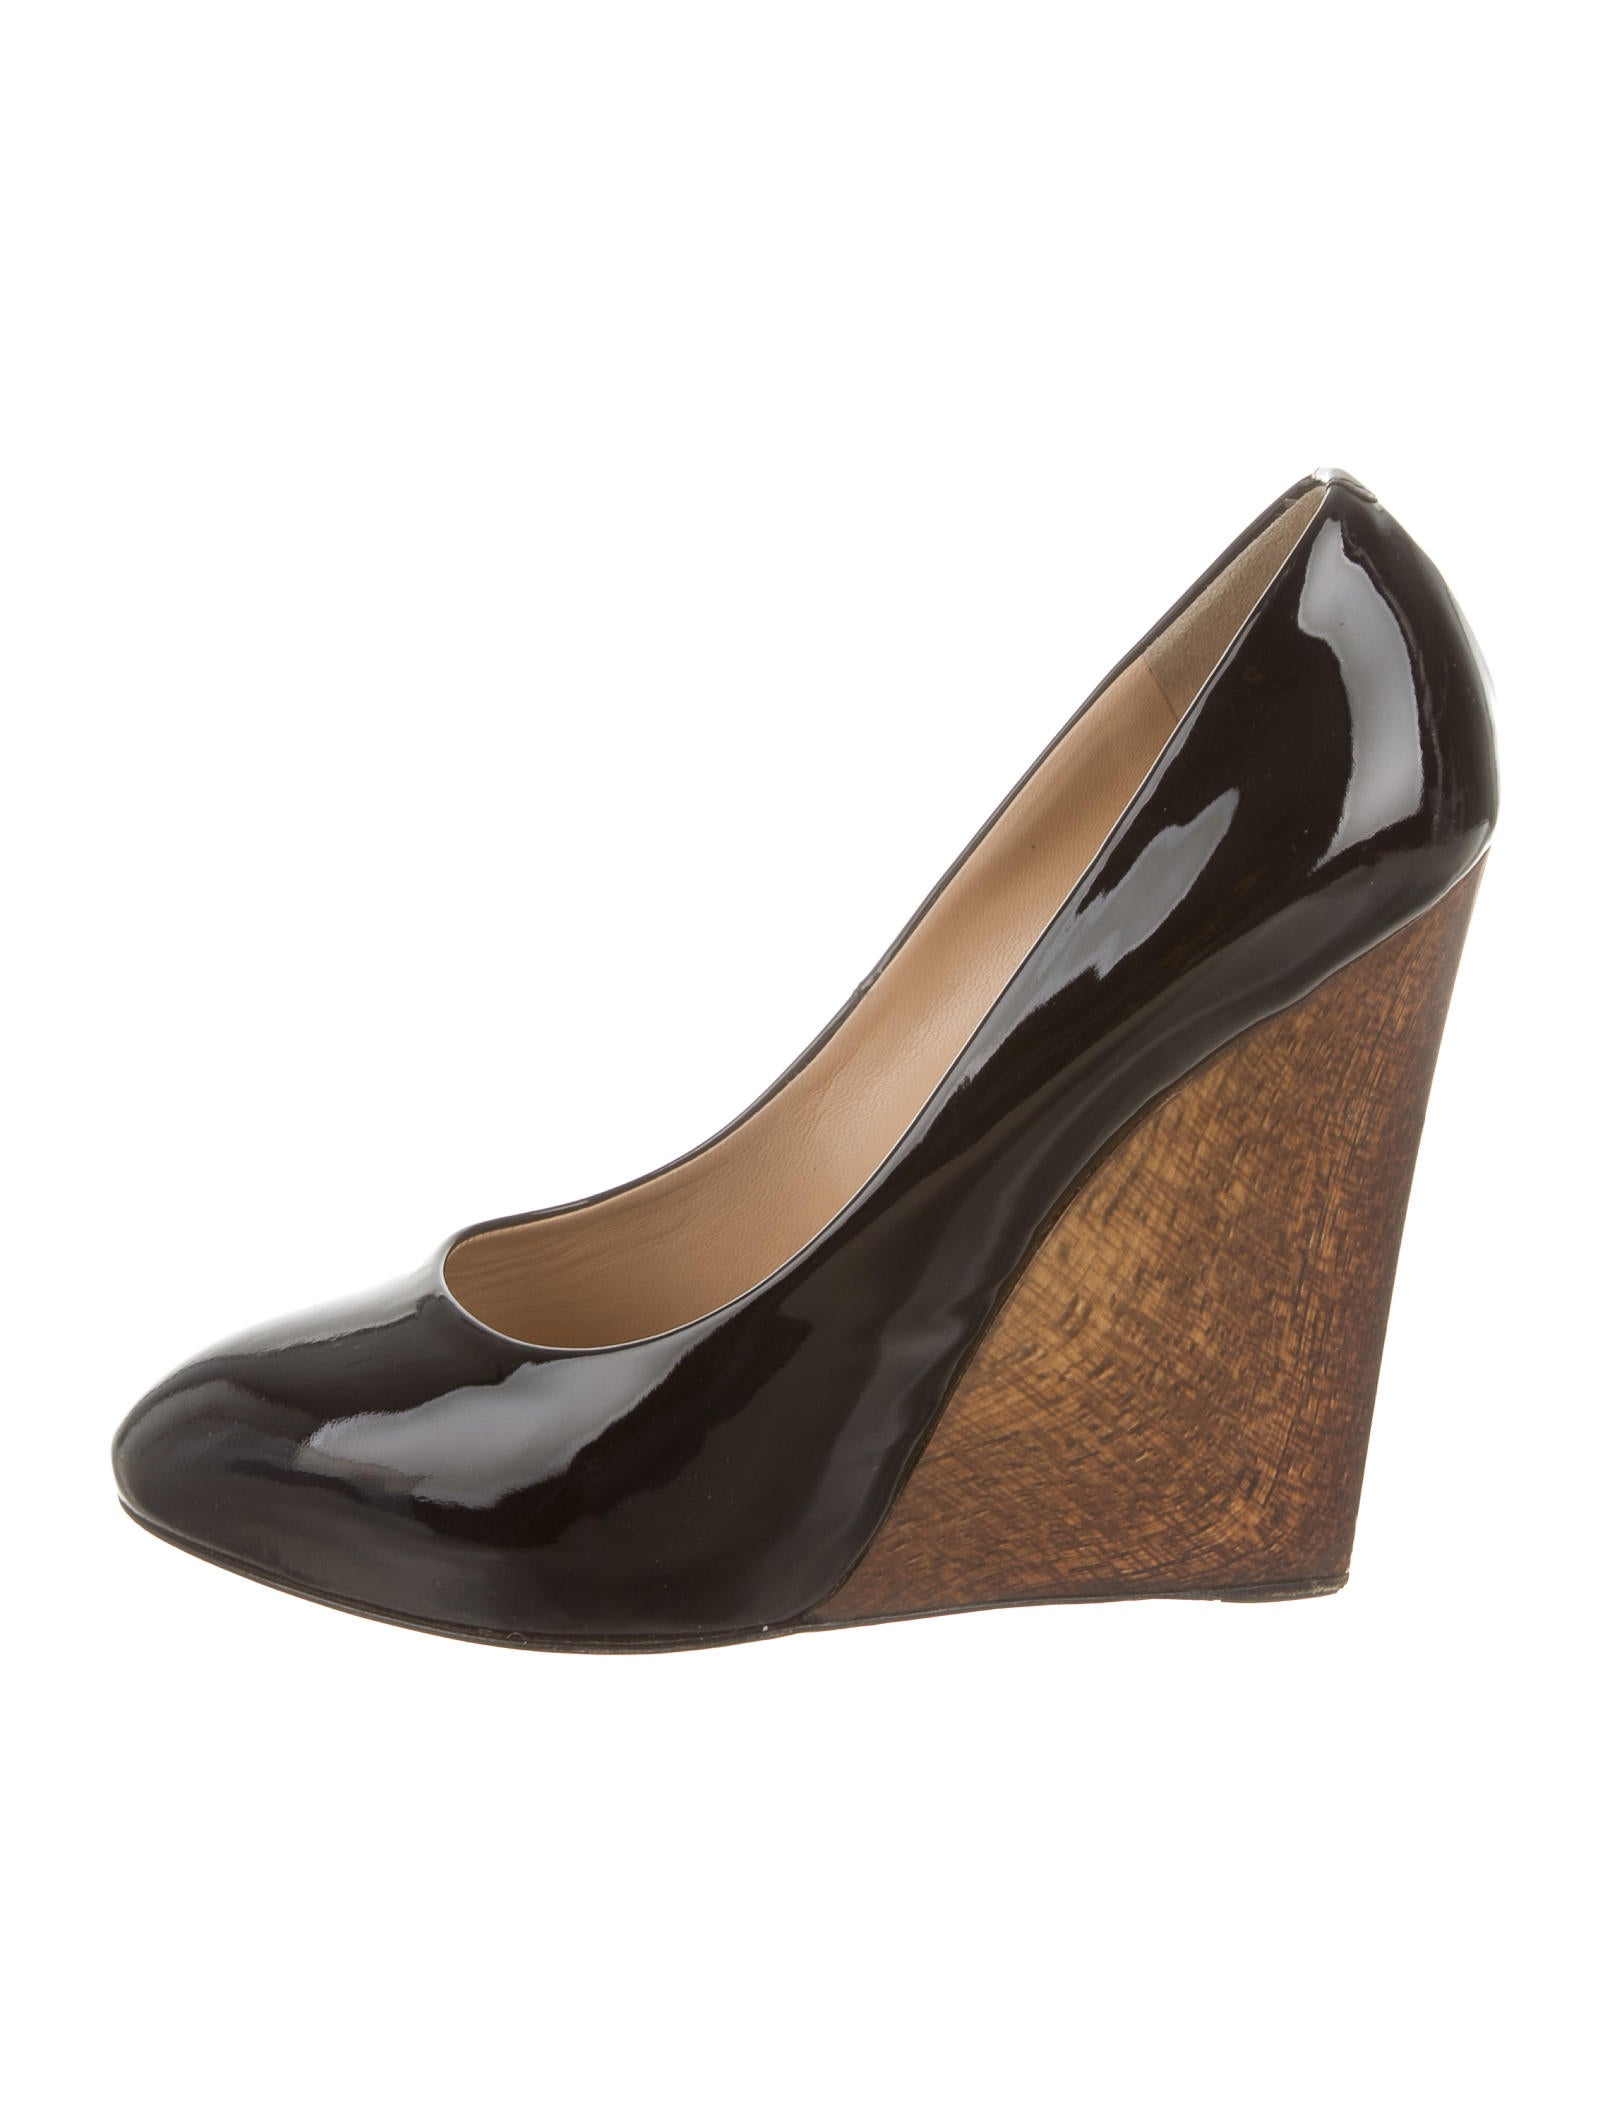 giuseppe zanotti patent leather pointed toe wedges shoes